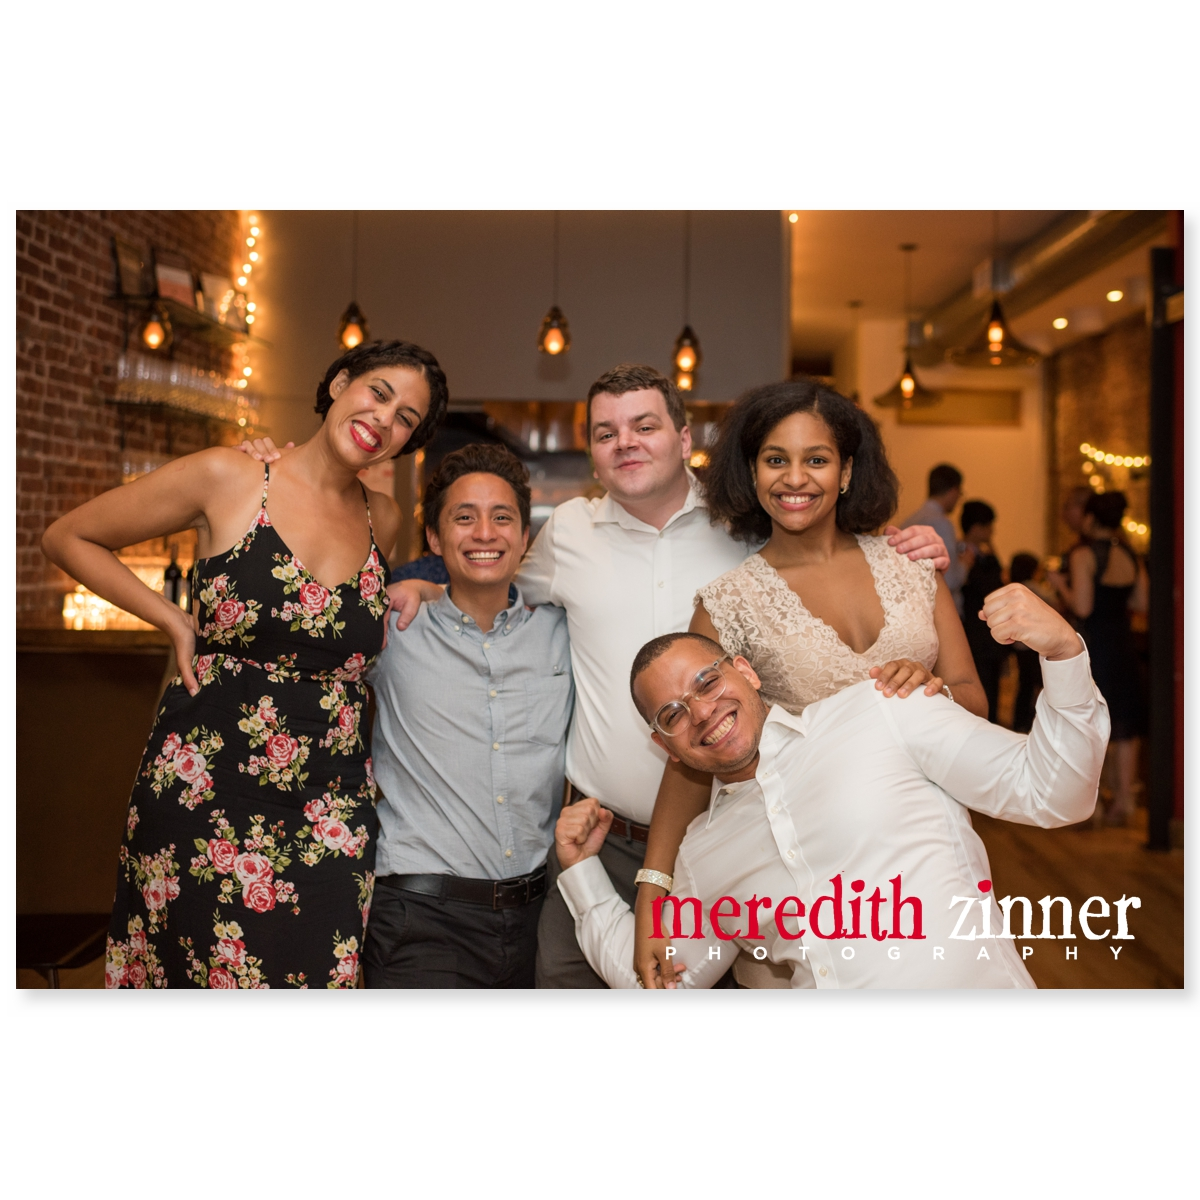 Meredith_Zinner_Photography_StilesCelebration_0453